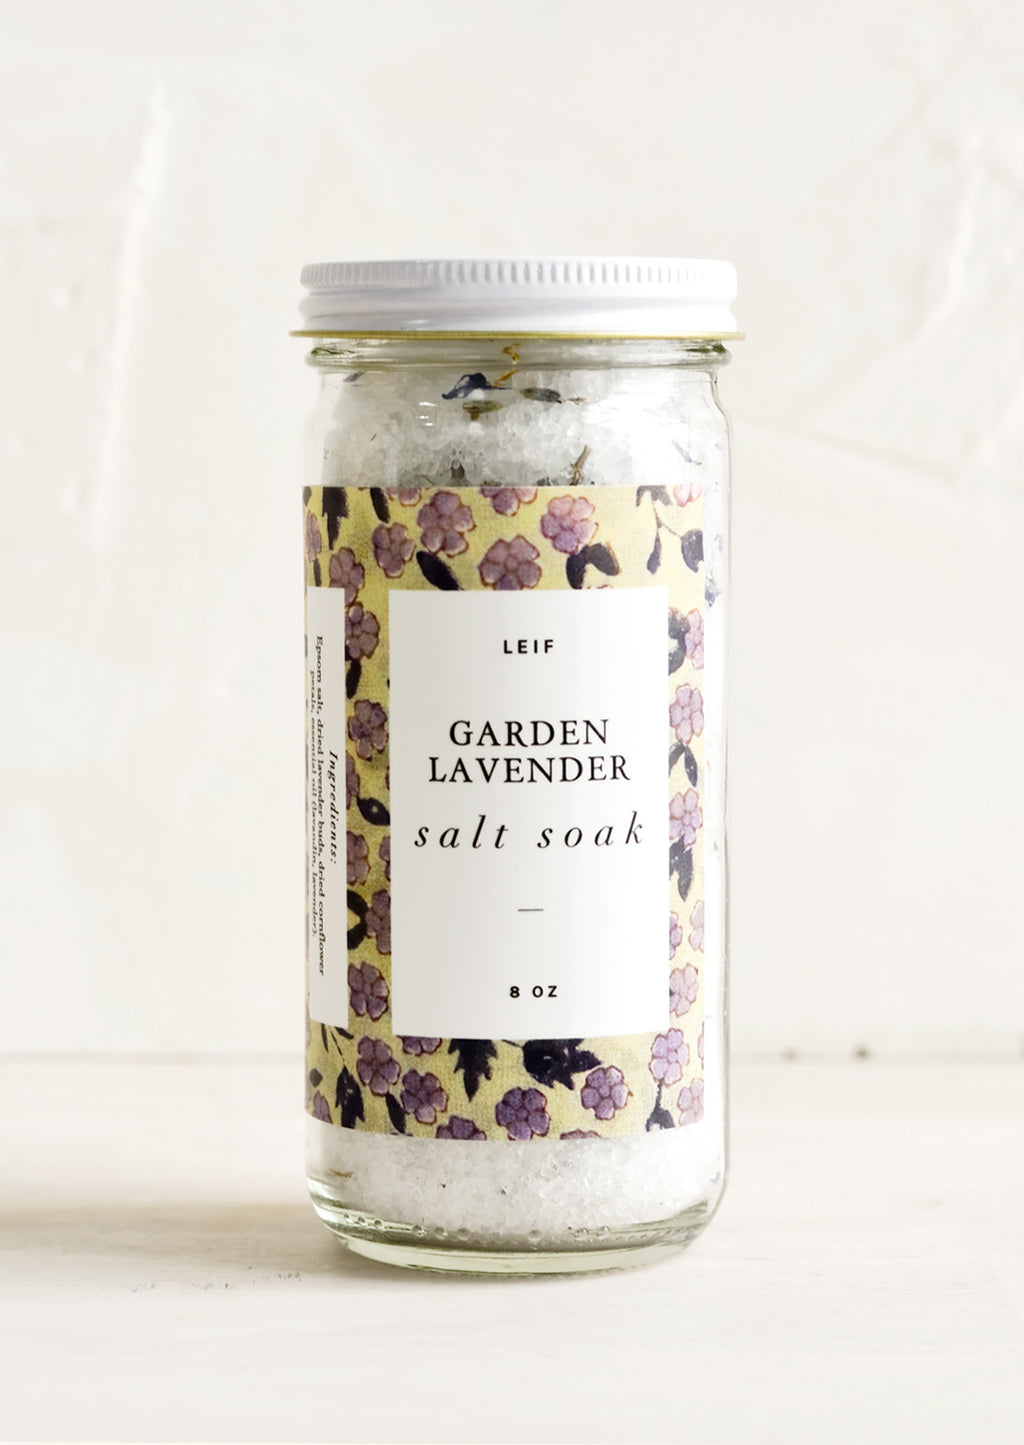 Garden Lavender: A straight sided glass jar containing Garden Lavender salt soak.